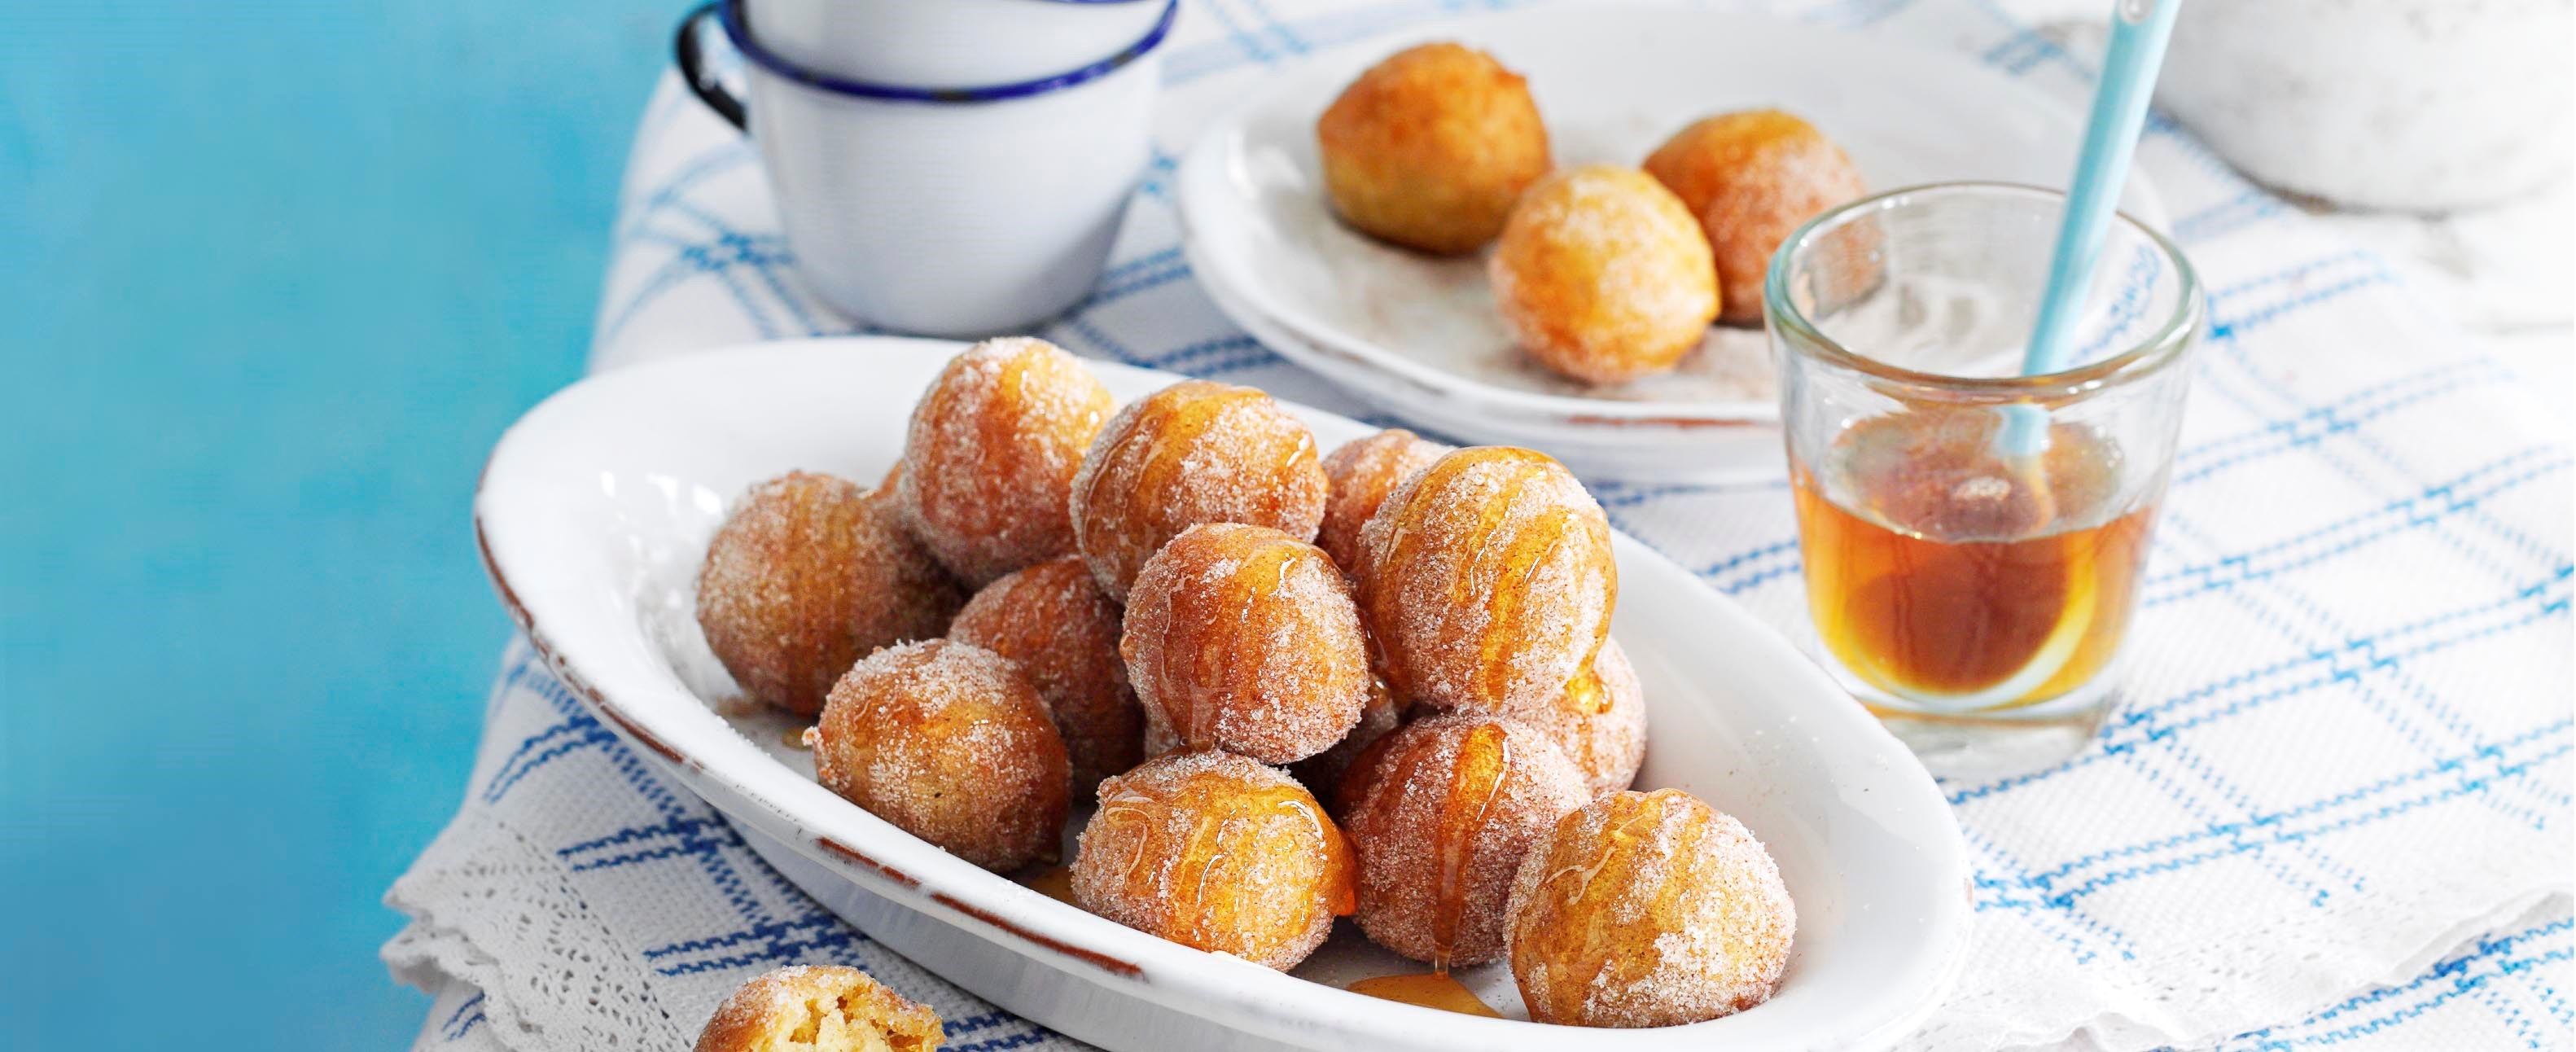 loukoumades greek donuts